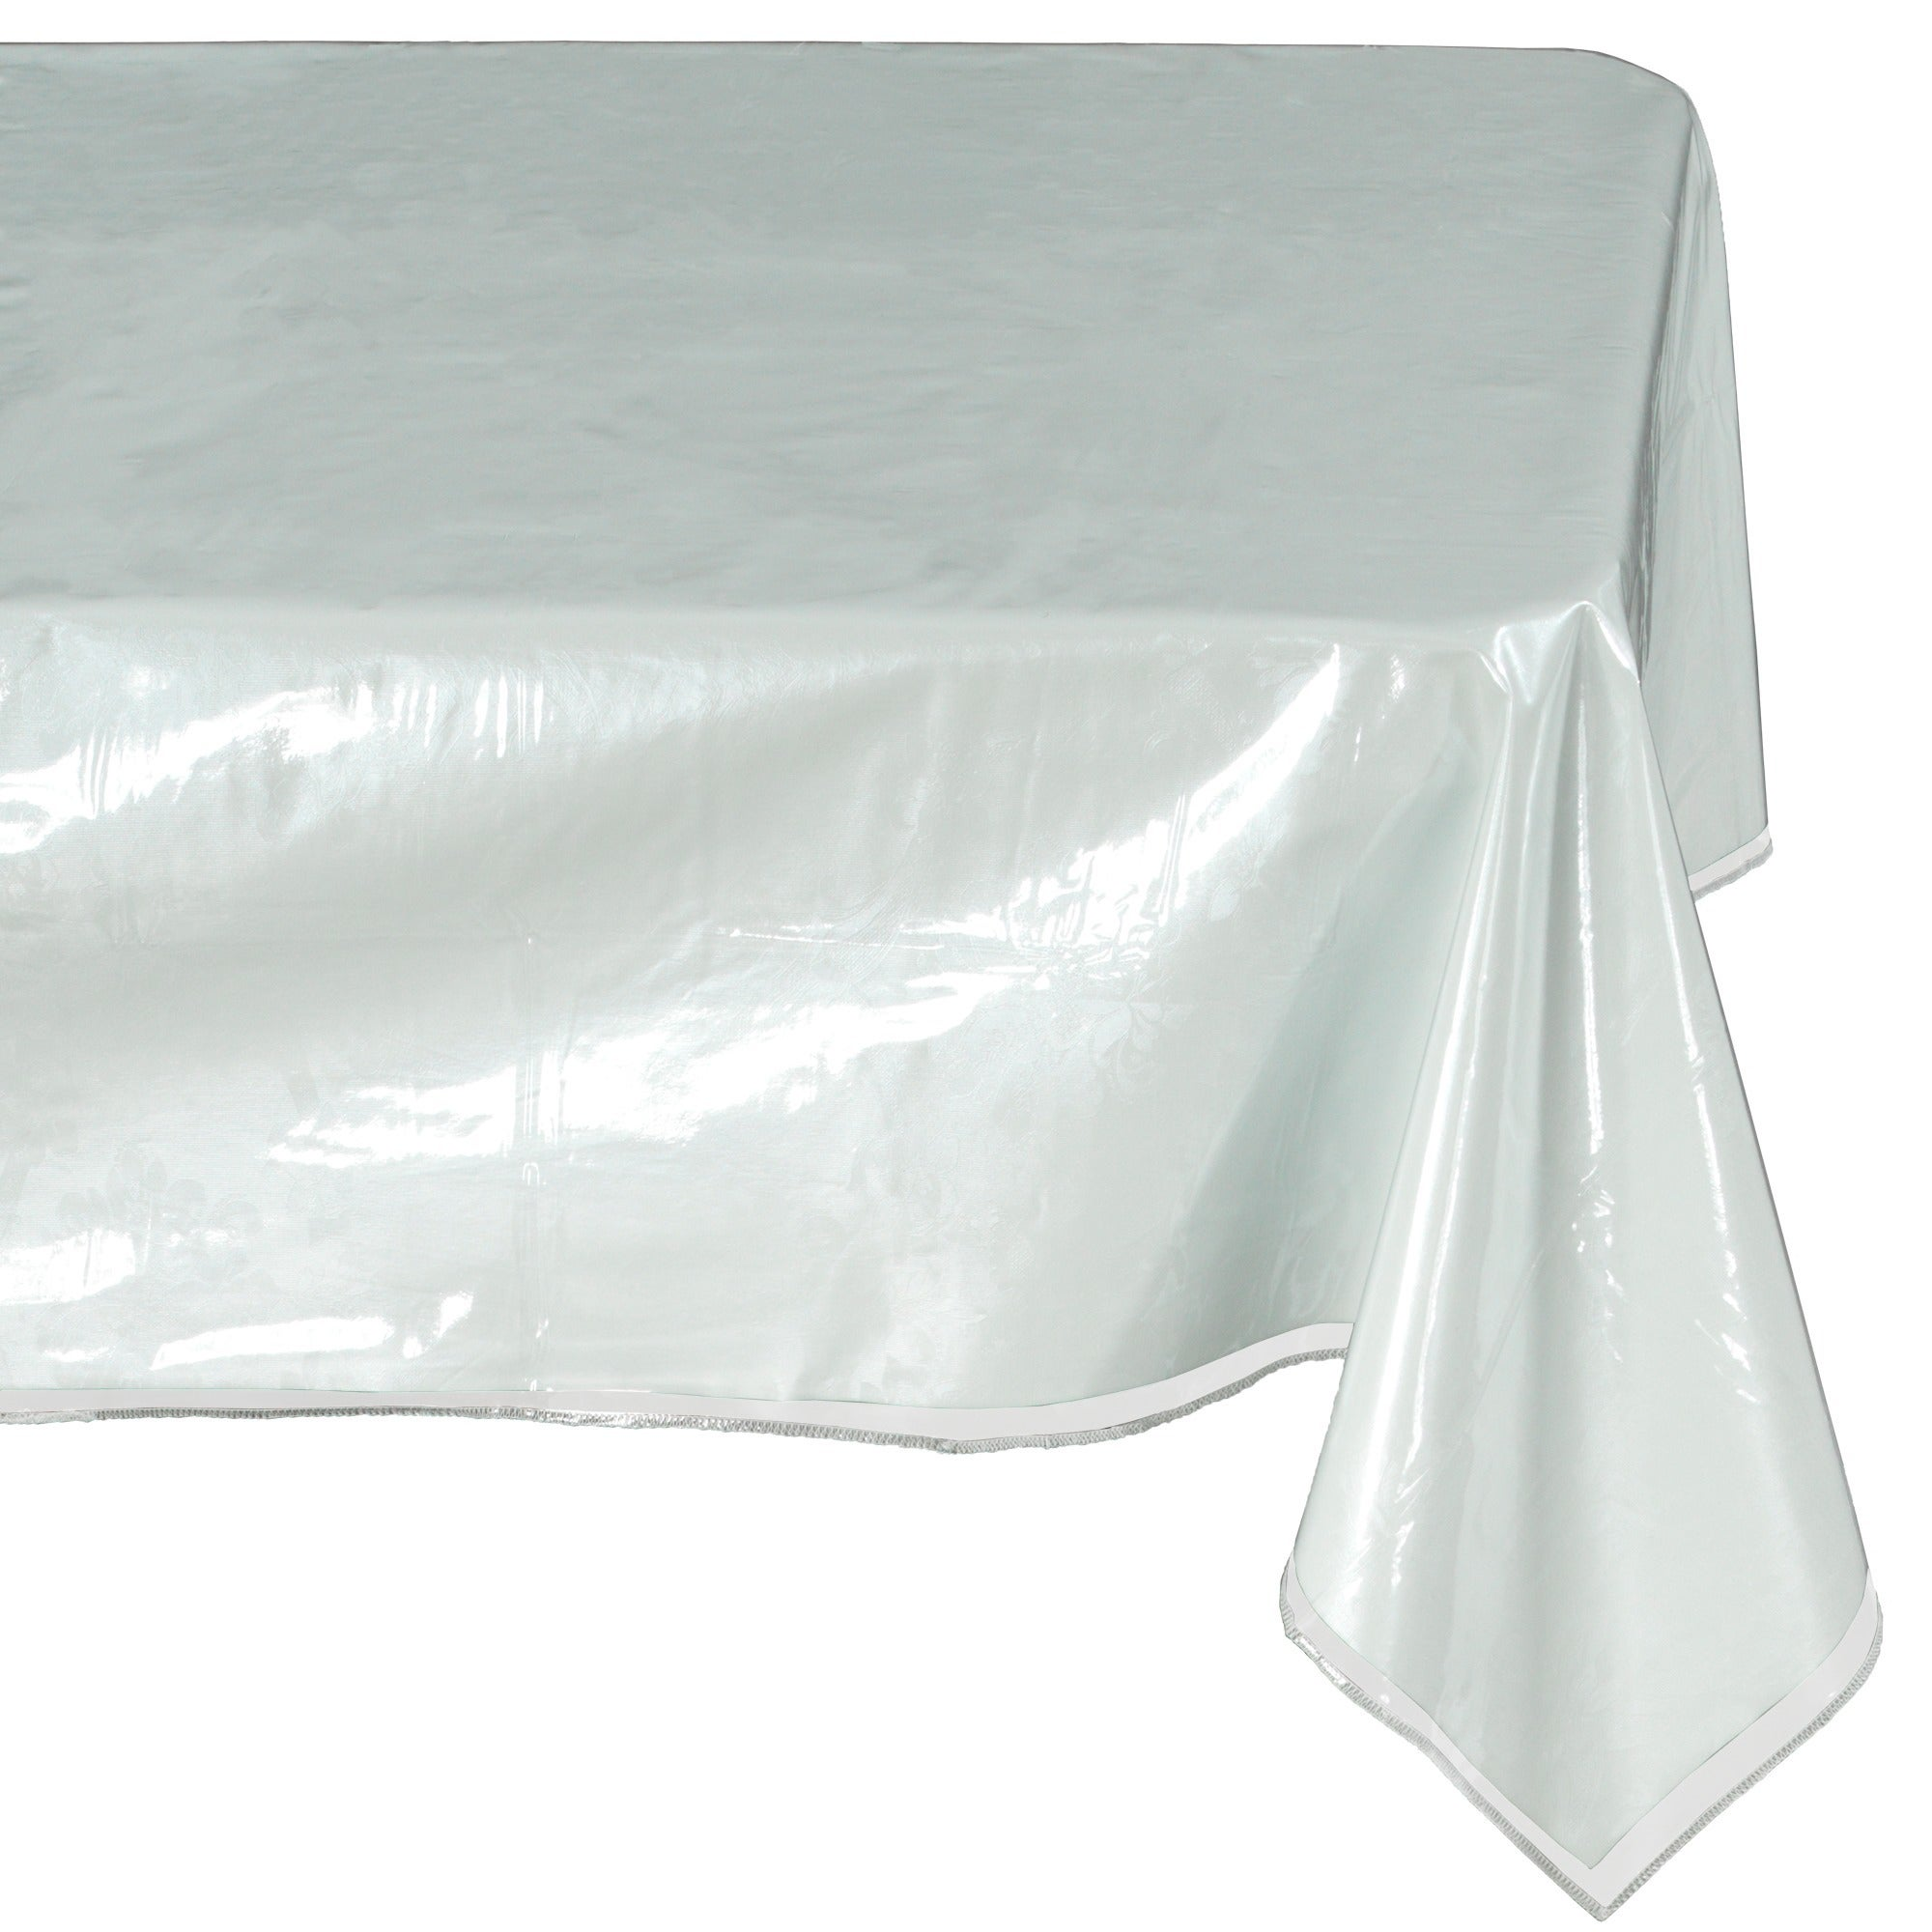 Ottomanson Heavy Duty Clear Plastic Tablecloth Clear Table Cover Protector White Sewn Edges Border Tablecloth  sc 1 st  Overstock & Shop Ottomanson Heavy Duty Clear Plastic Tablecloth Clear Table ...